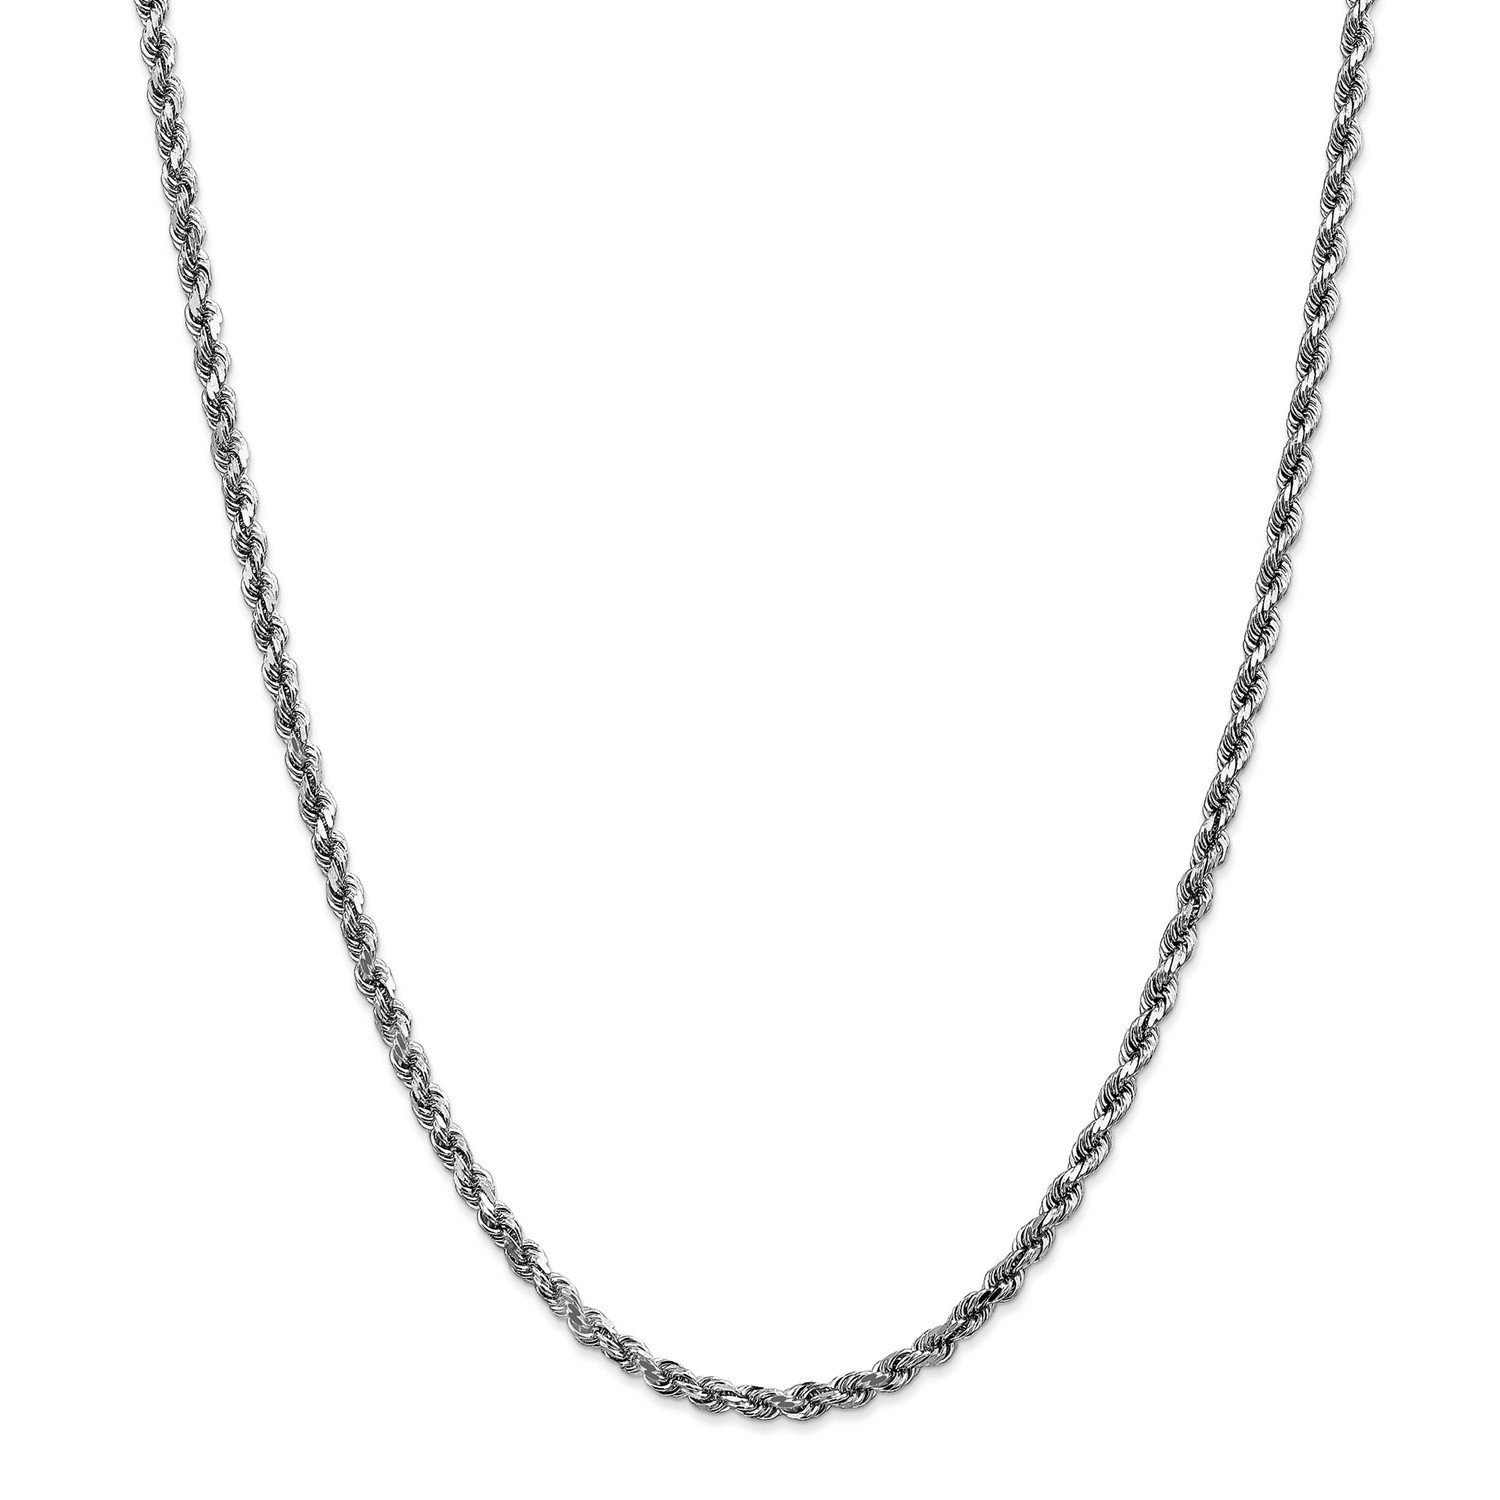 Roy Rose Jewelry 14K White Gold 3.5mm Diamond-cut Rope Chain Necklace ~ Length 22'' inches